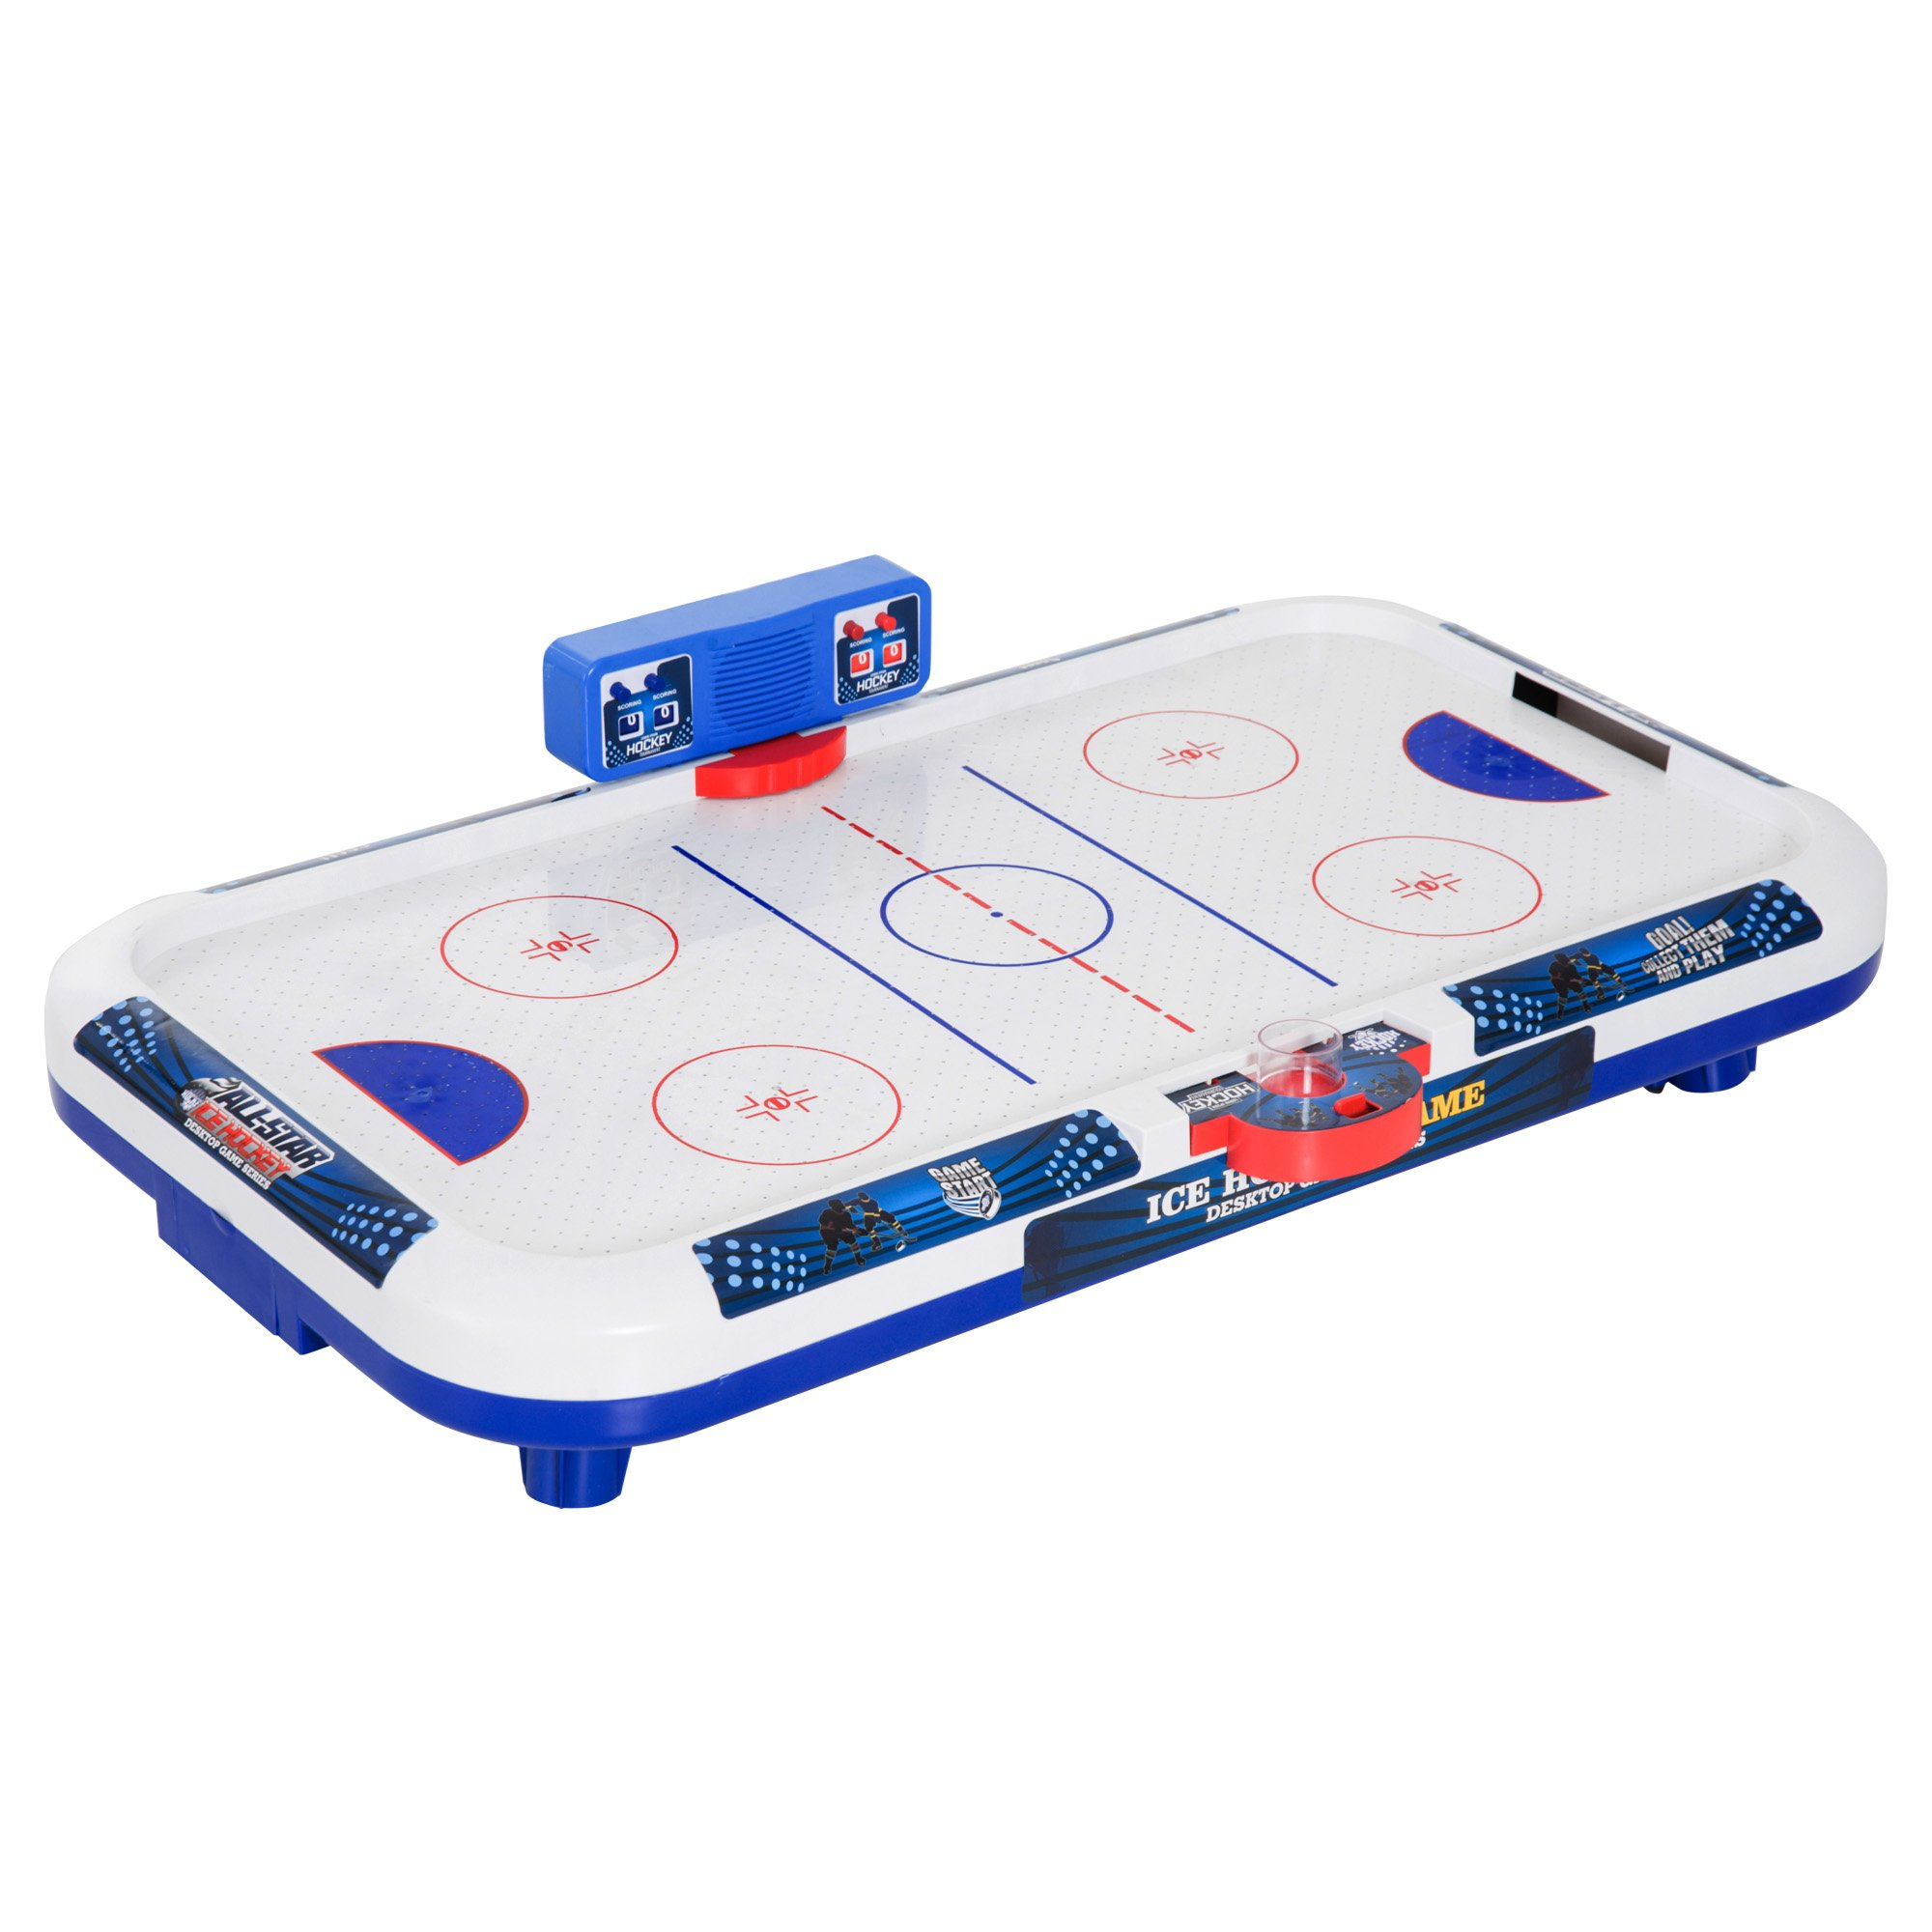 Soozier 40'' Mini Ice Hockey Themed Air Hockey Table Tabletop Game for Kids - White/Blue